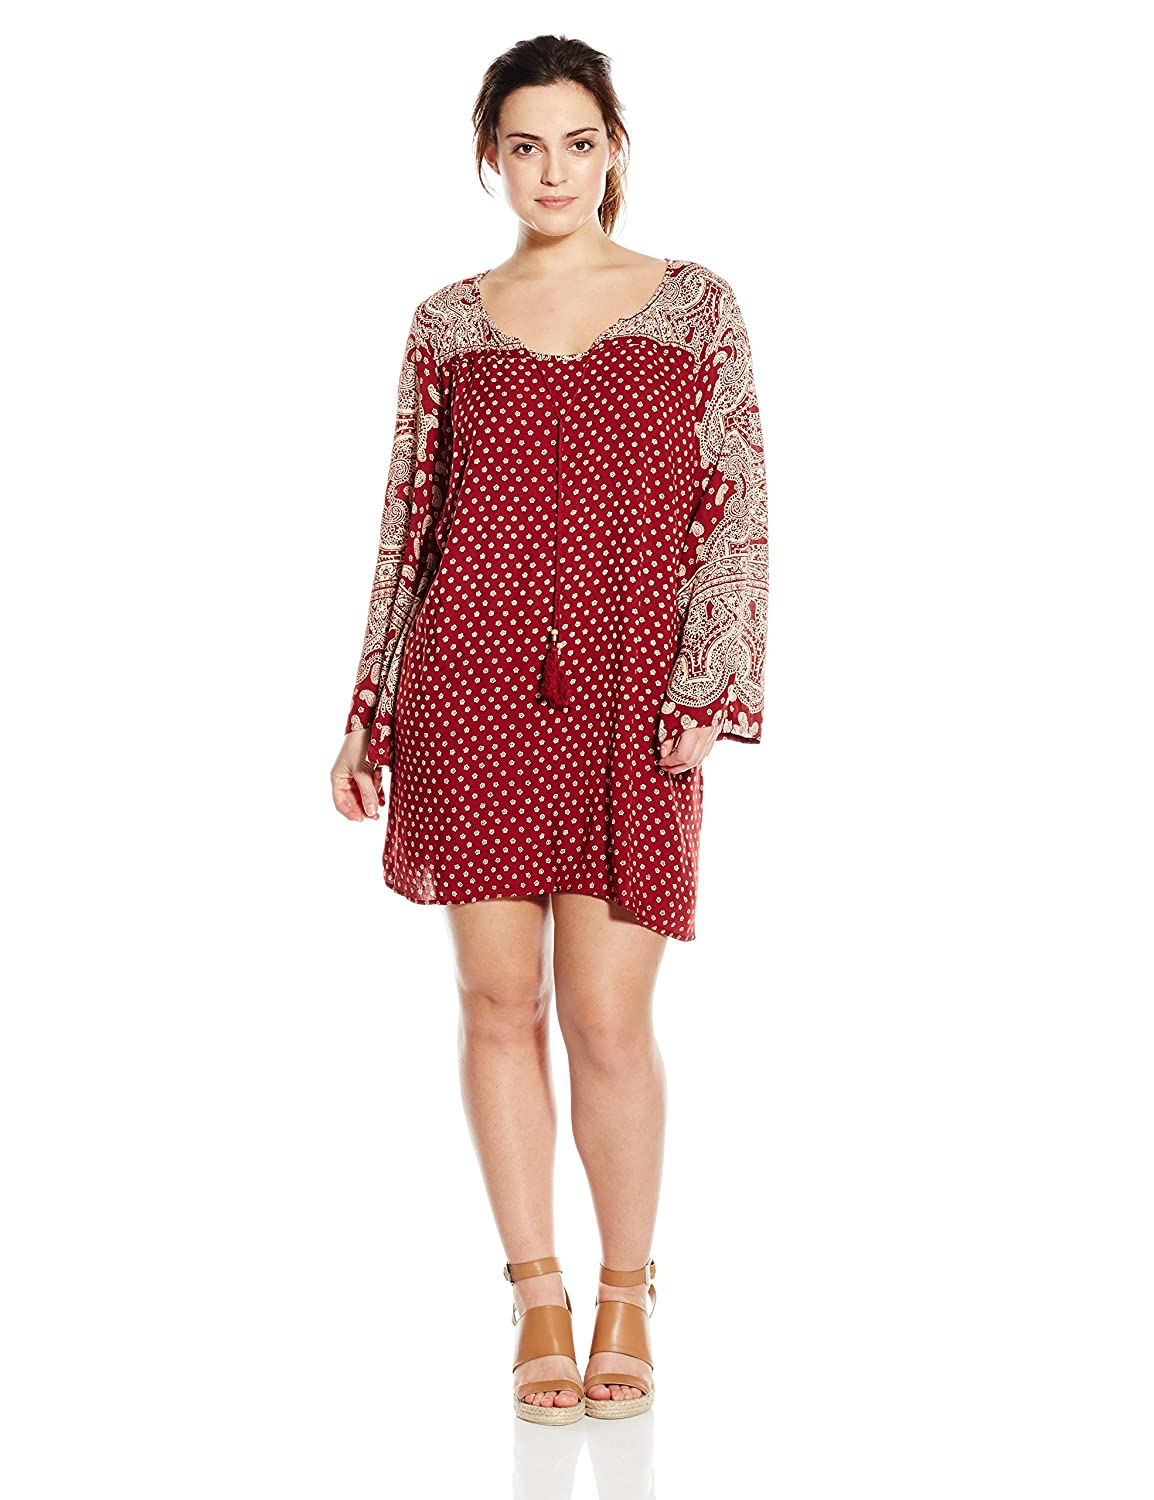 Angie Women's Juniors Plus-Size Red Printed Bell-Sleeve Dress Angie Juniors F9179-A485